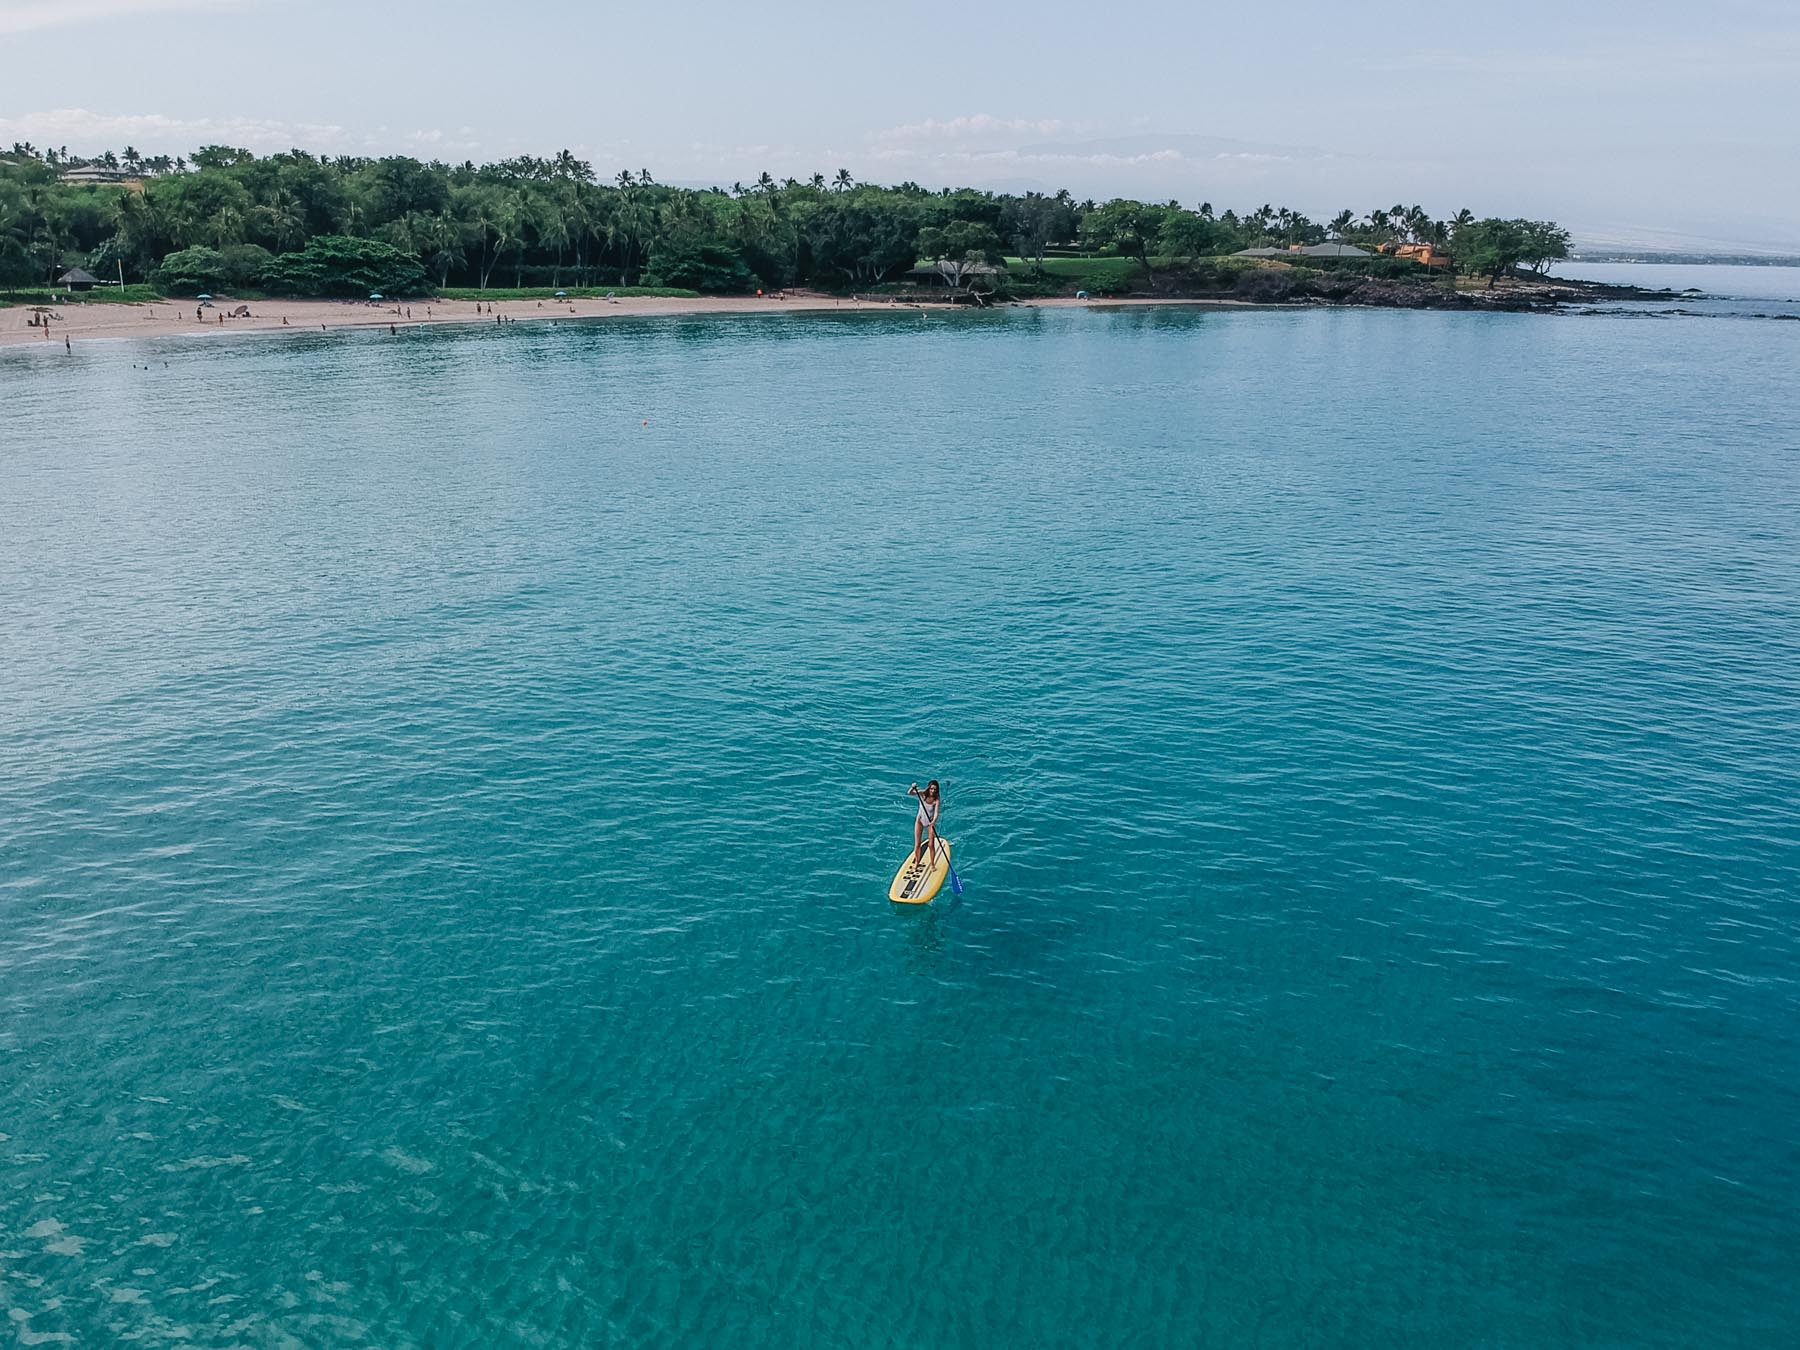 Jess Ann Kirby explores Hawaii with an afternoon paddle boarding on Mauna Kea